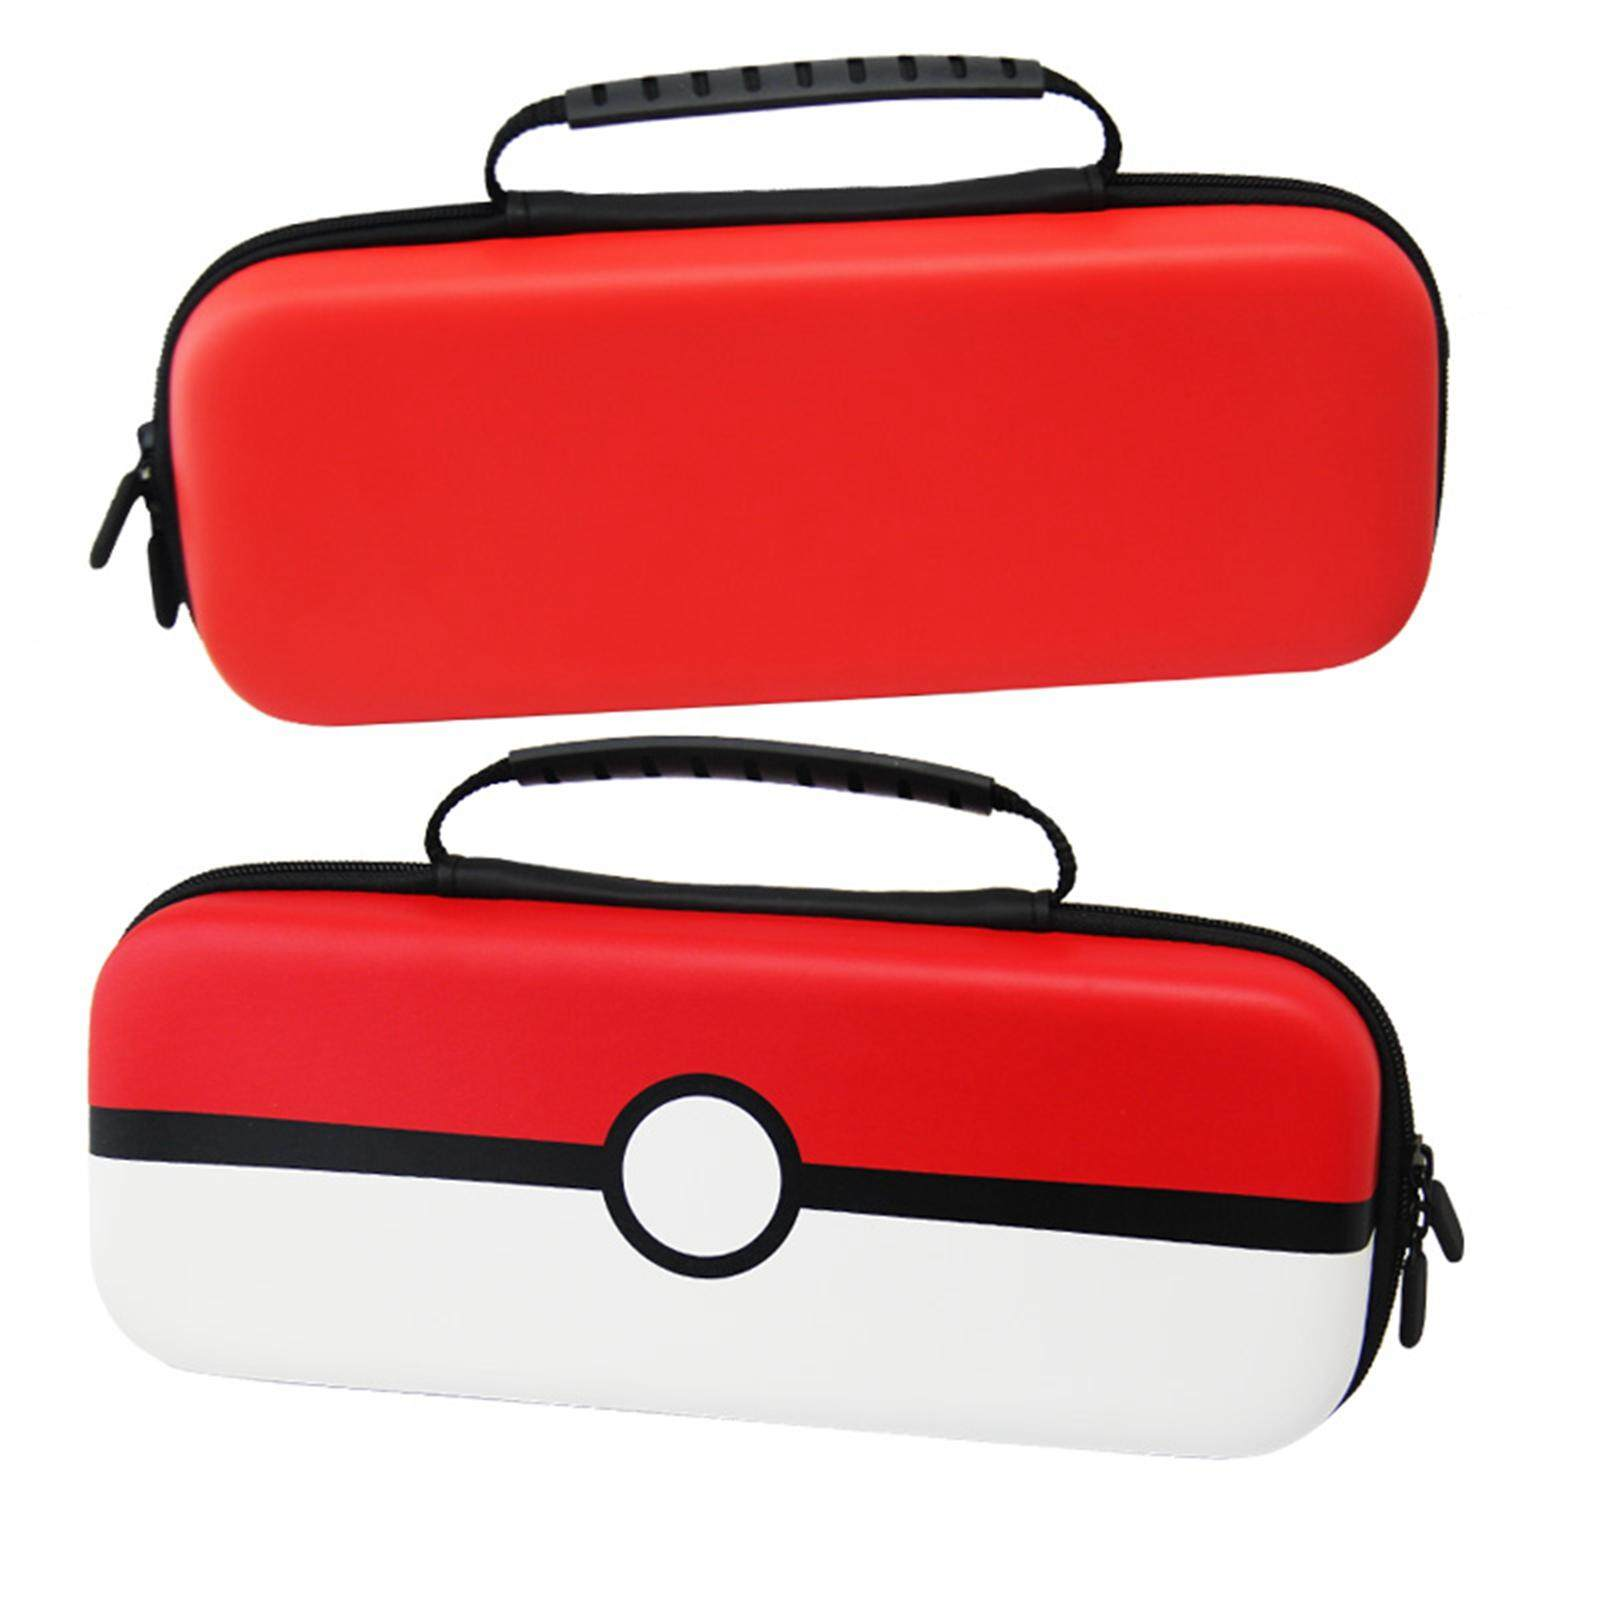 Multi-function storage bag Storage Travel Bag For Nintendo Switch Video Games Console